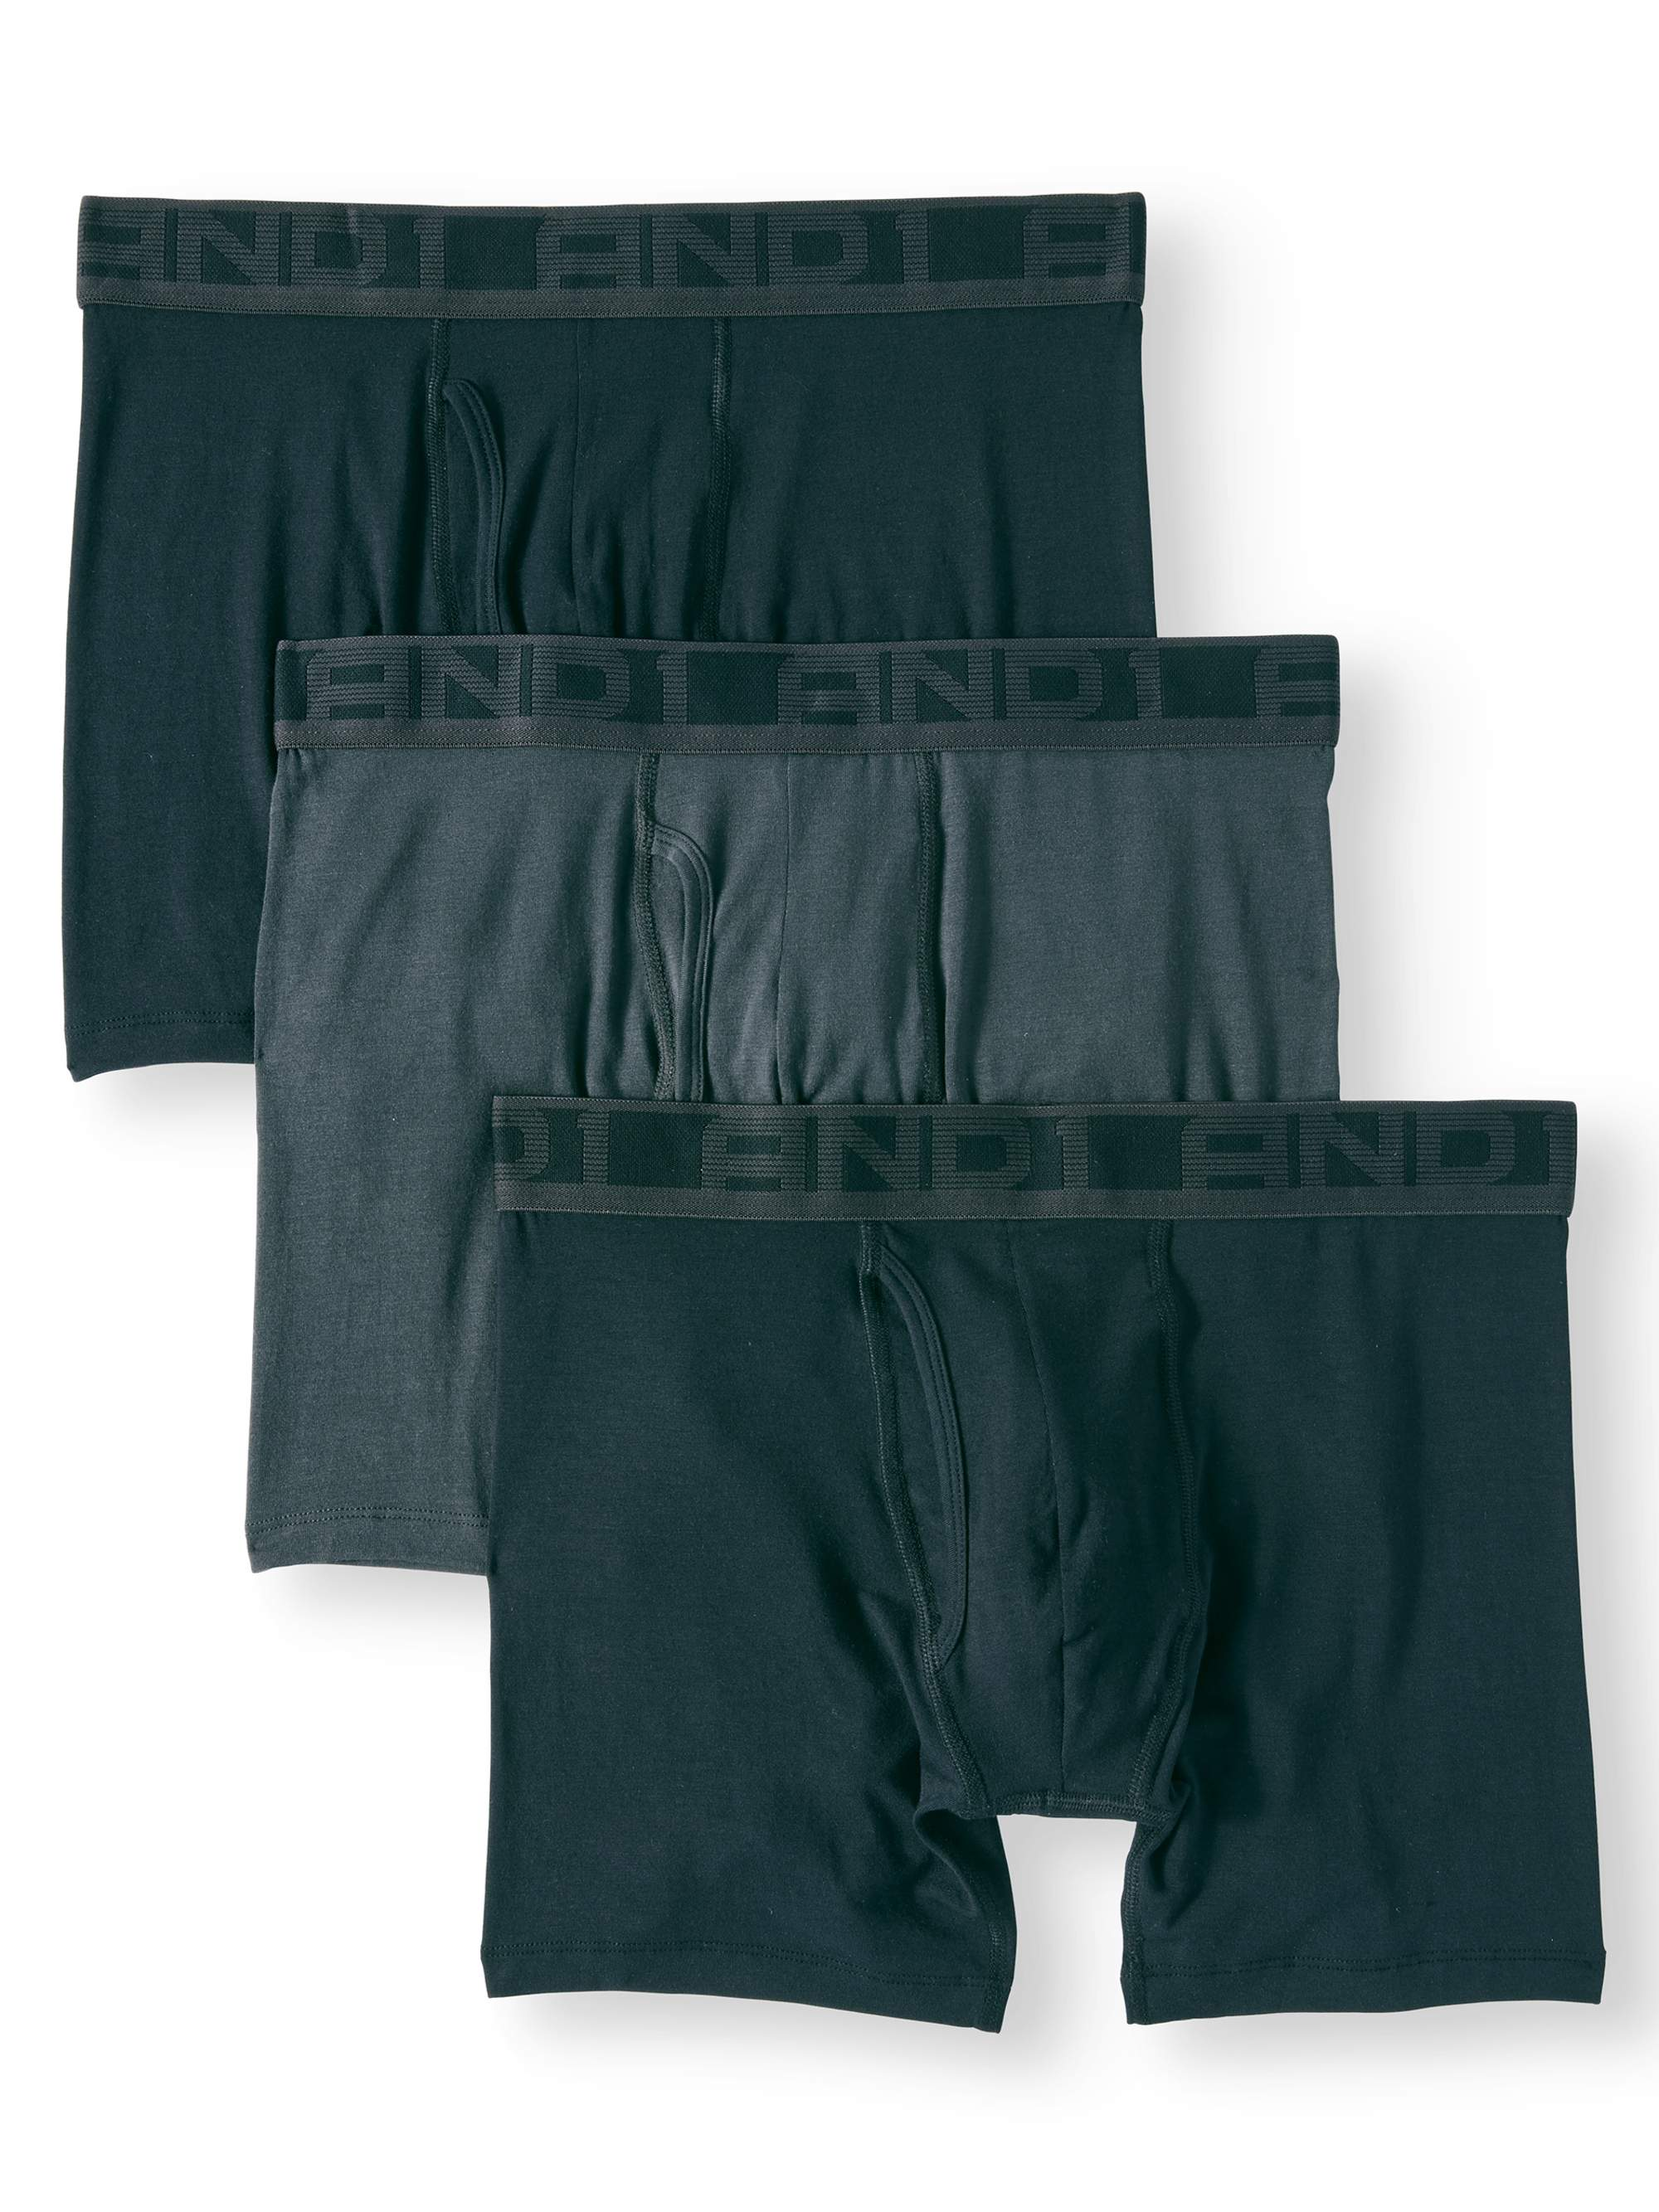 Men's Ultra Soft Modal Boxer Brief with Athletic Pouch